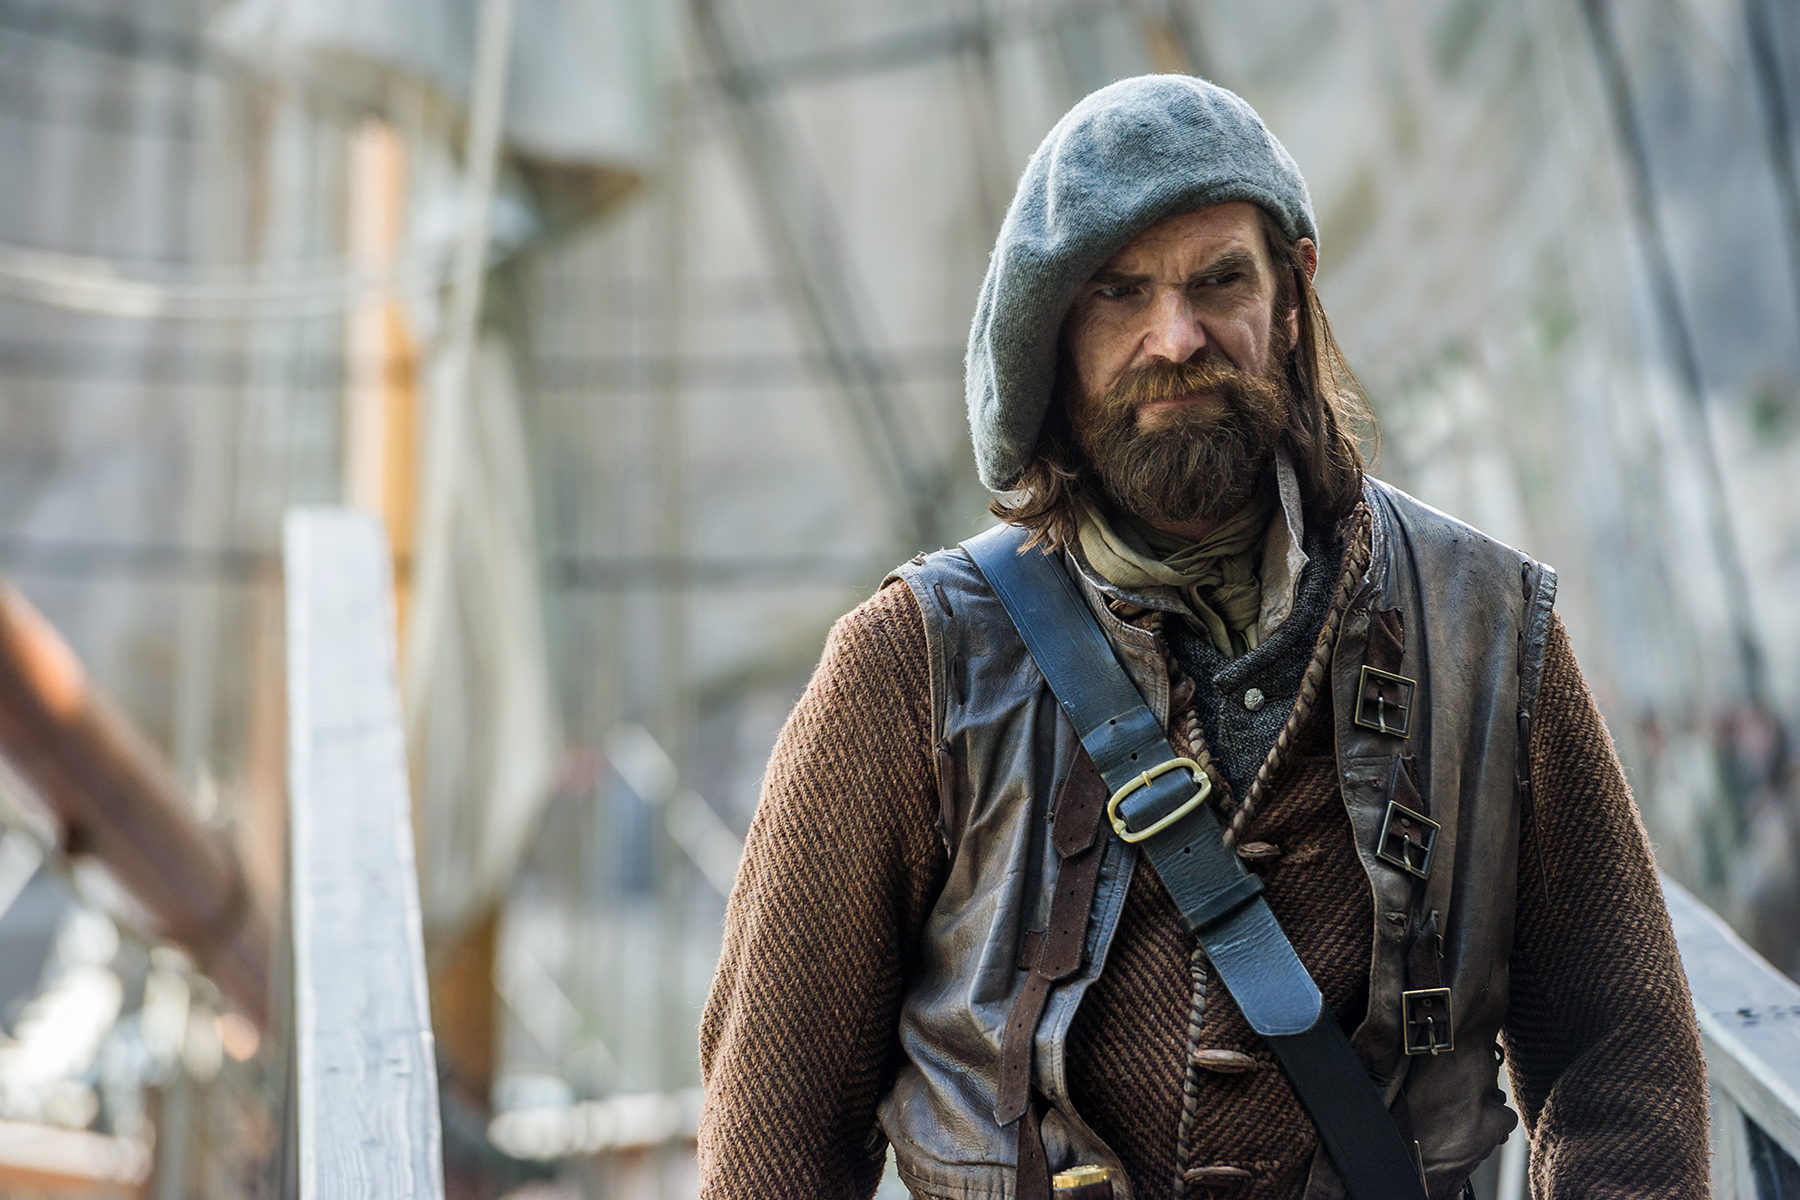 Duncan Lacroix as Murtag in 'Outlander' Season 2, Episode 1 — 'Through A Glass, Darkly'